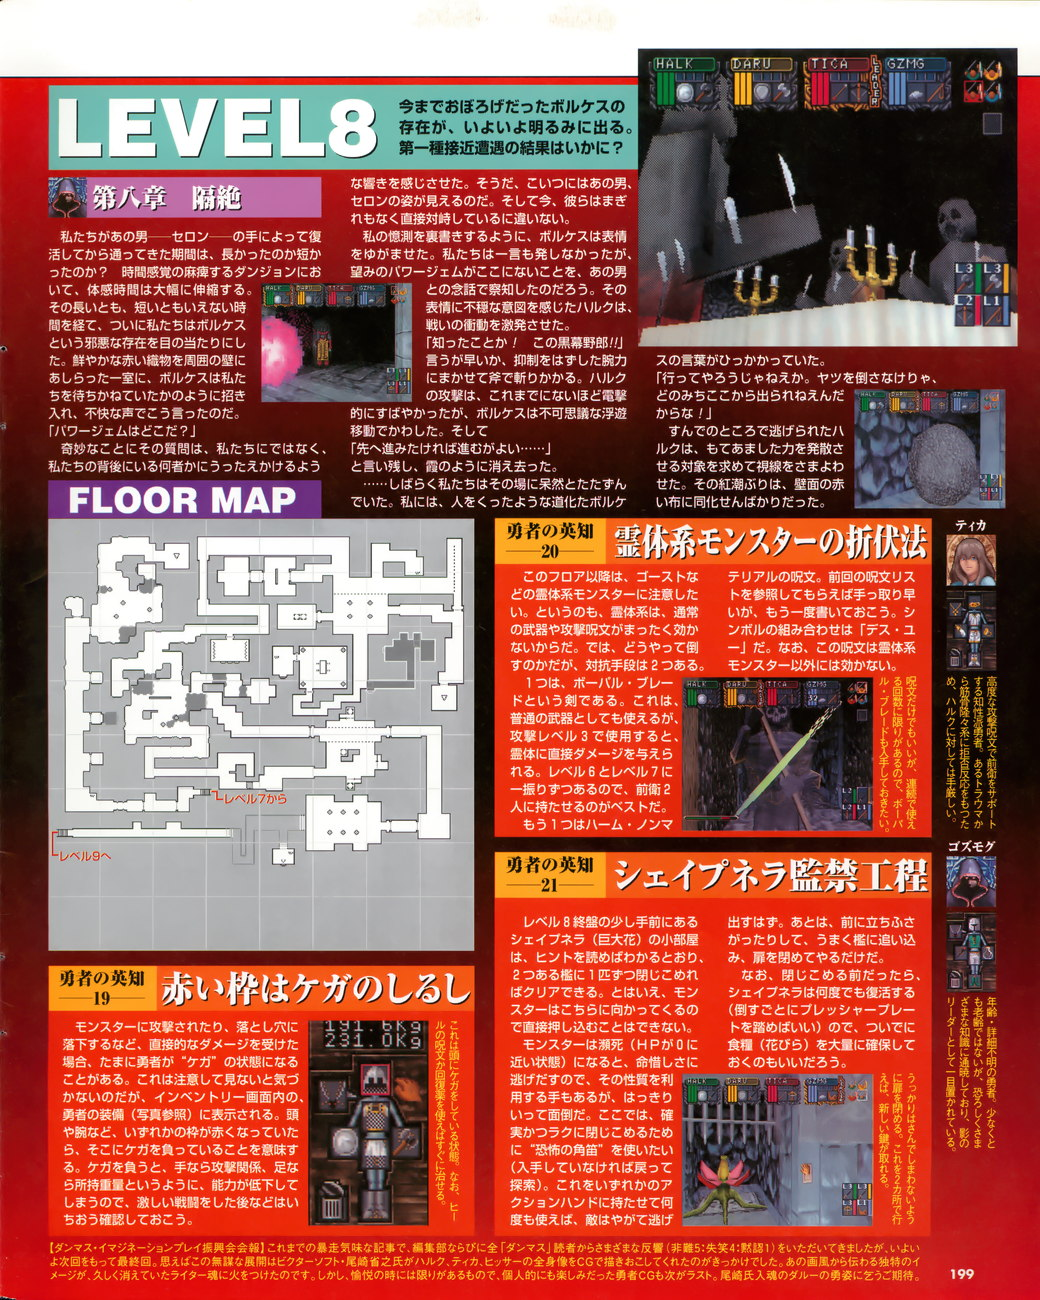 Dungeon Master Nexus Guide published in Japanese magazine 'Sega Saturn Magazine', Vol 14 08 May 1998, Page 199